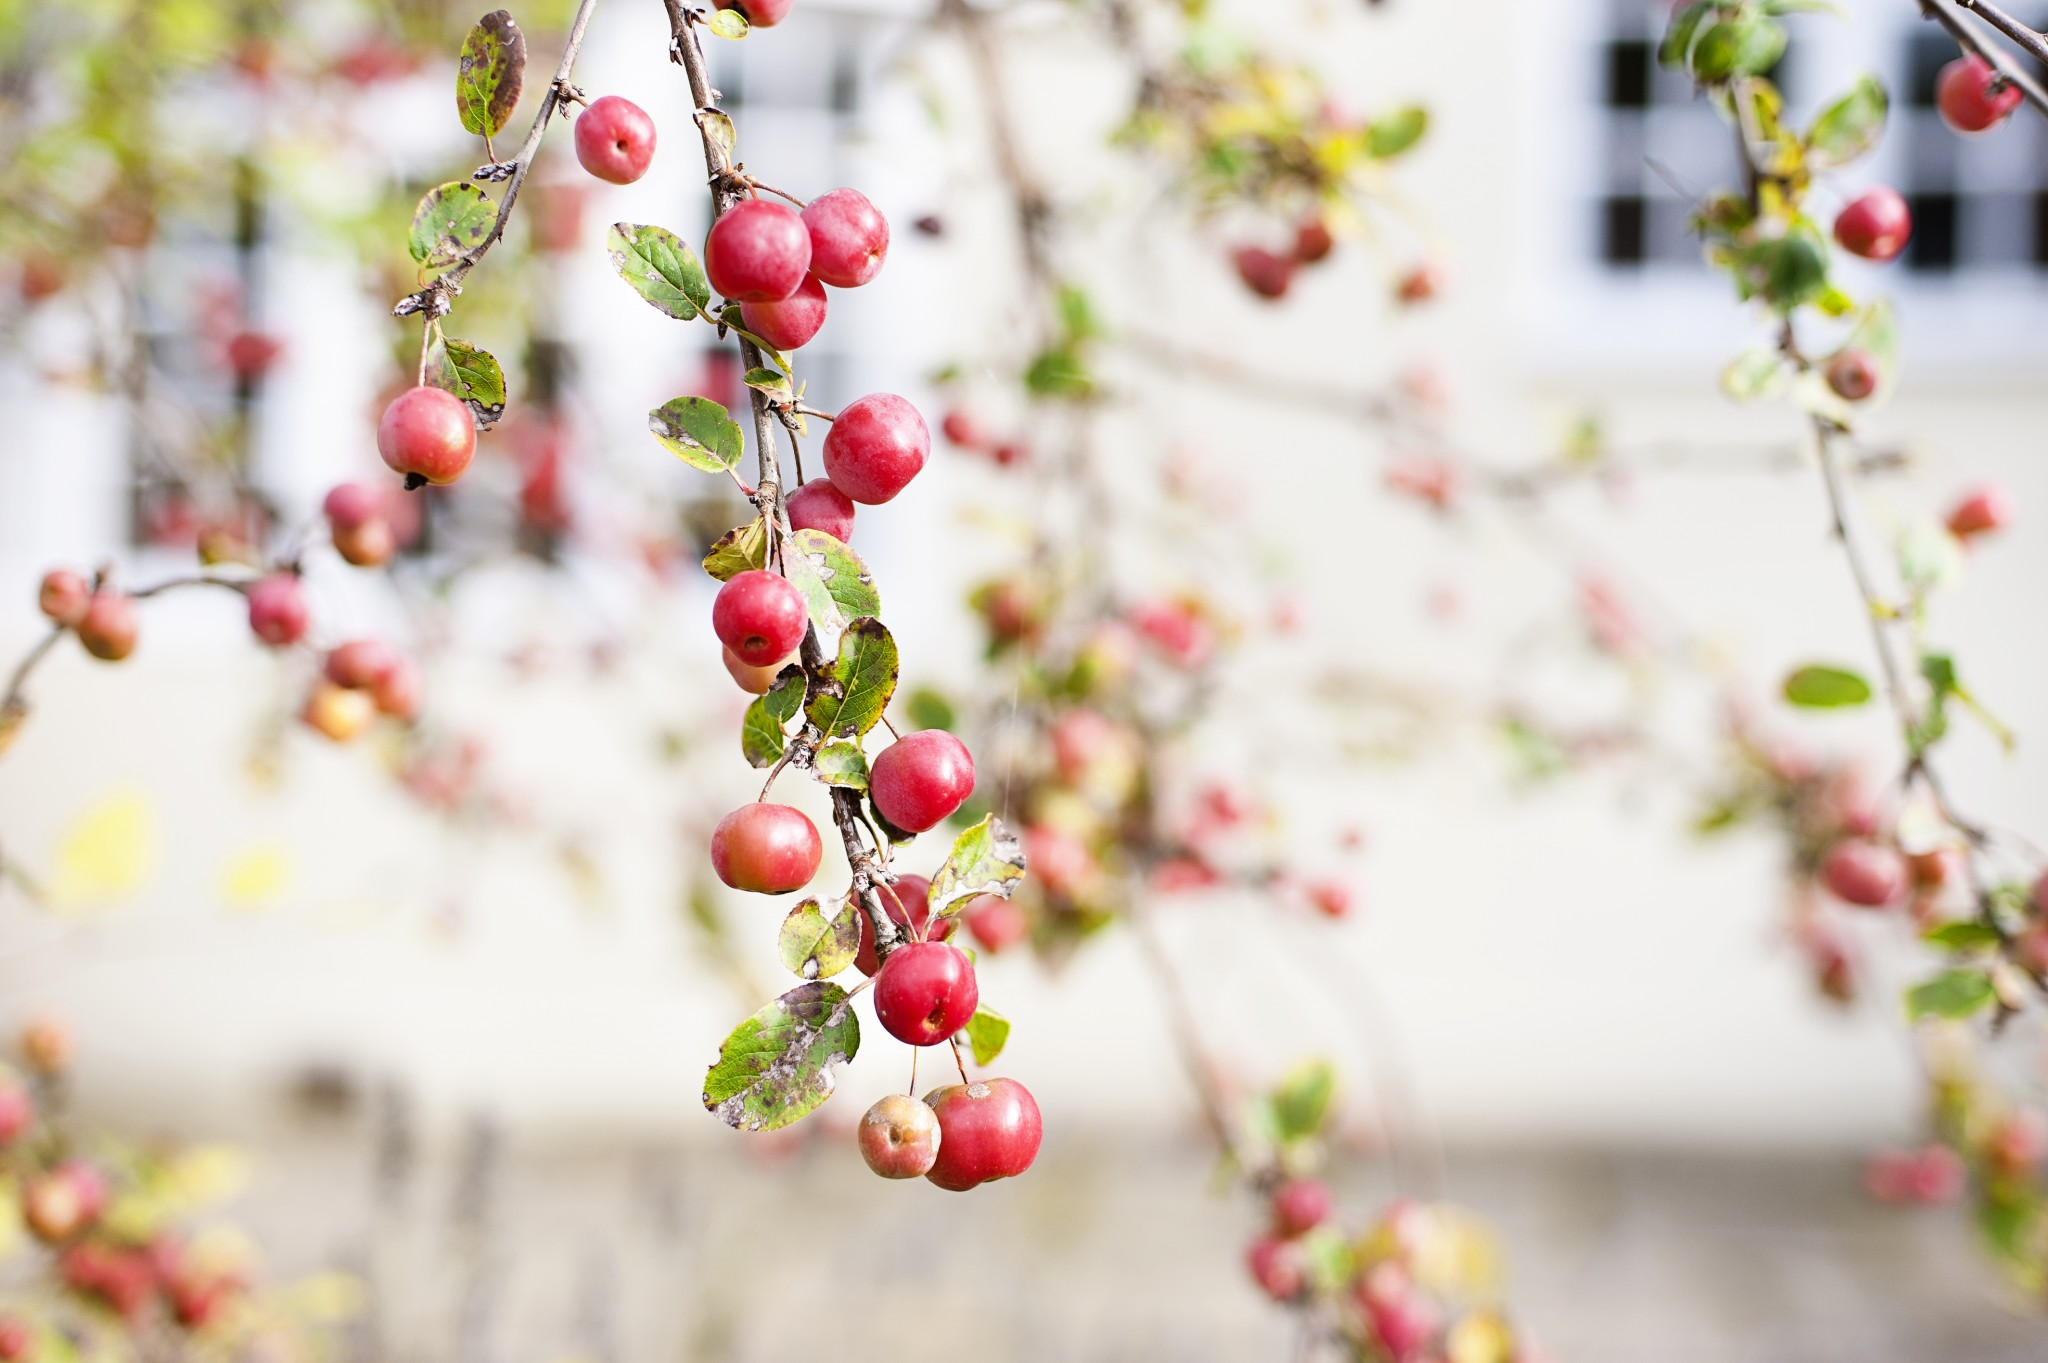 A branch laden with crab apples